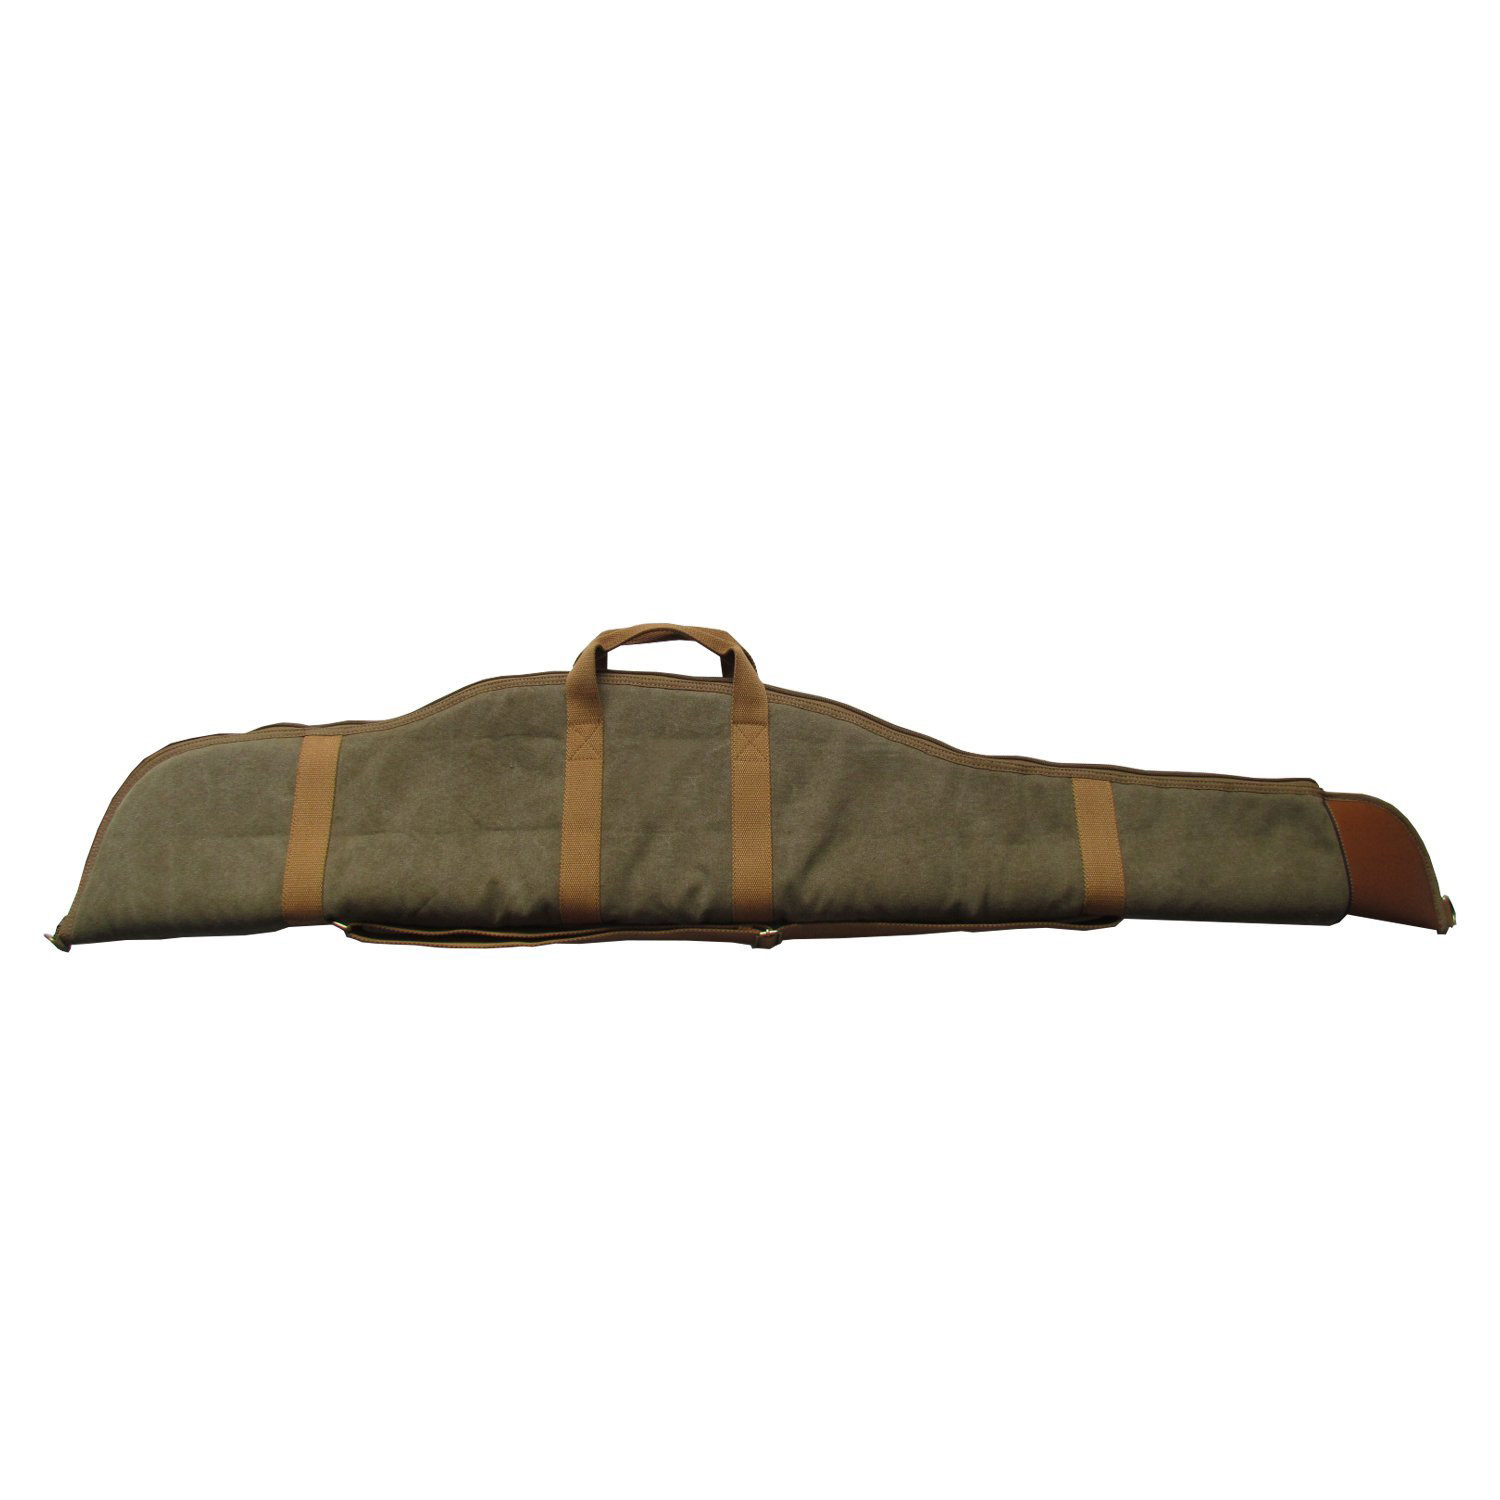 Hunting Canvas Leather Trim Soft Padded Gun Bag Scoped Rifle Case